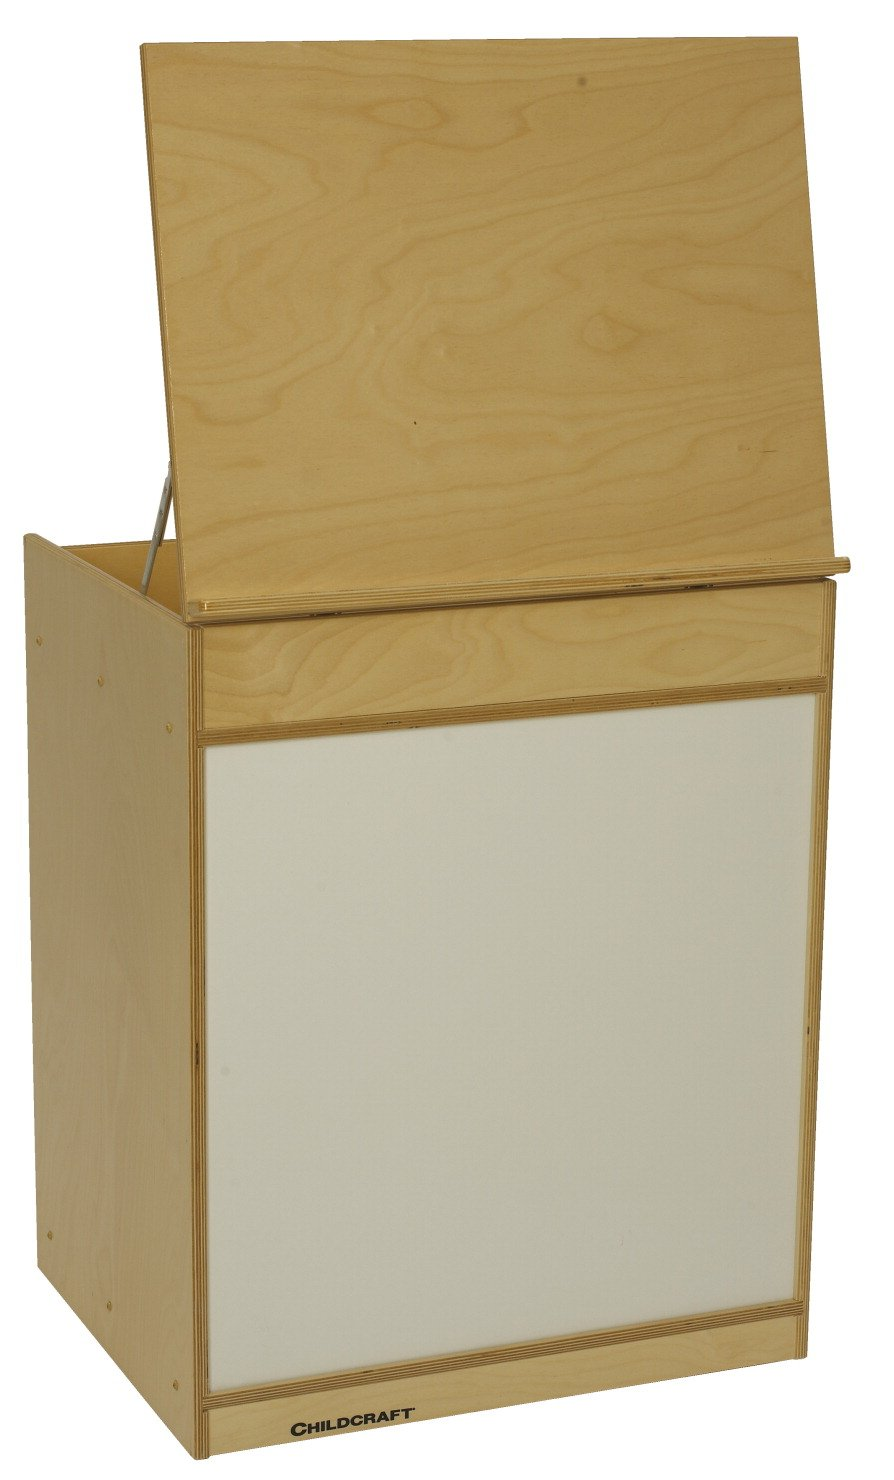 Childcraft Magnetic Dry-Erase Mobile Horizontal Language Center, 23-3/4 W x 19-1/2 D x 29-3/4 H in